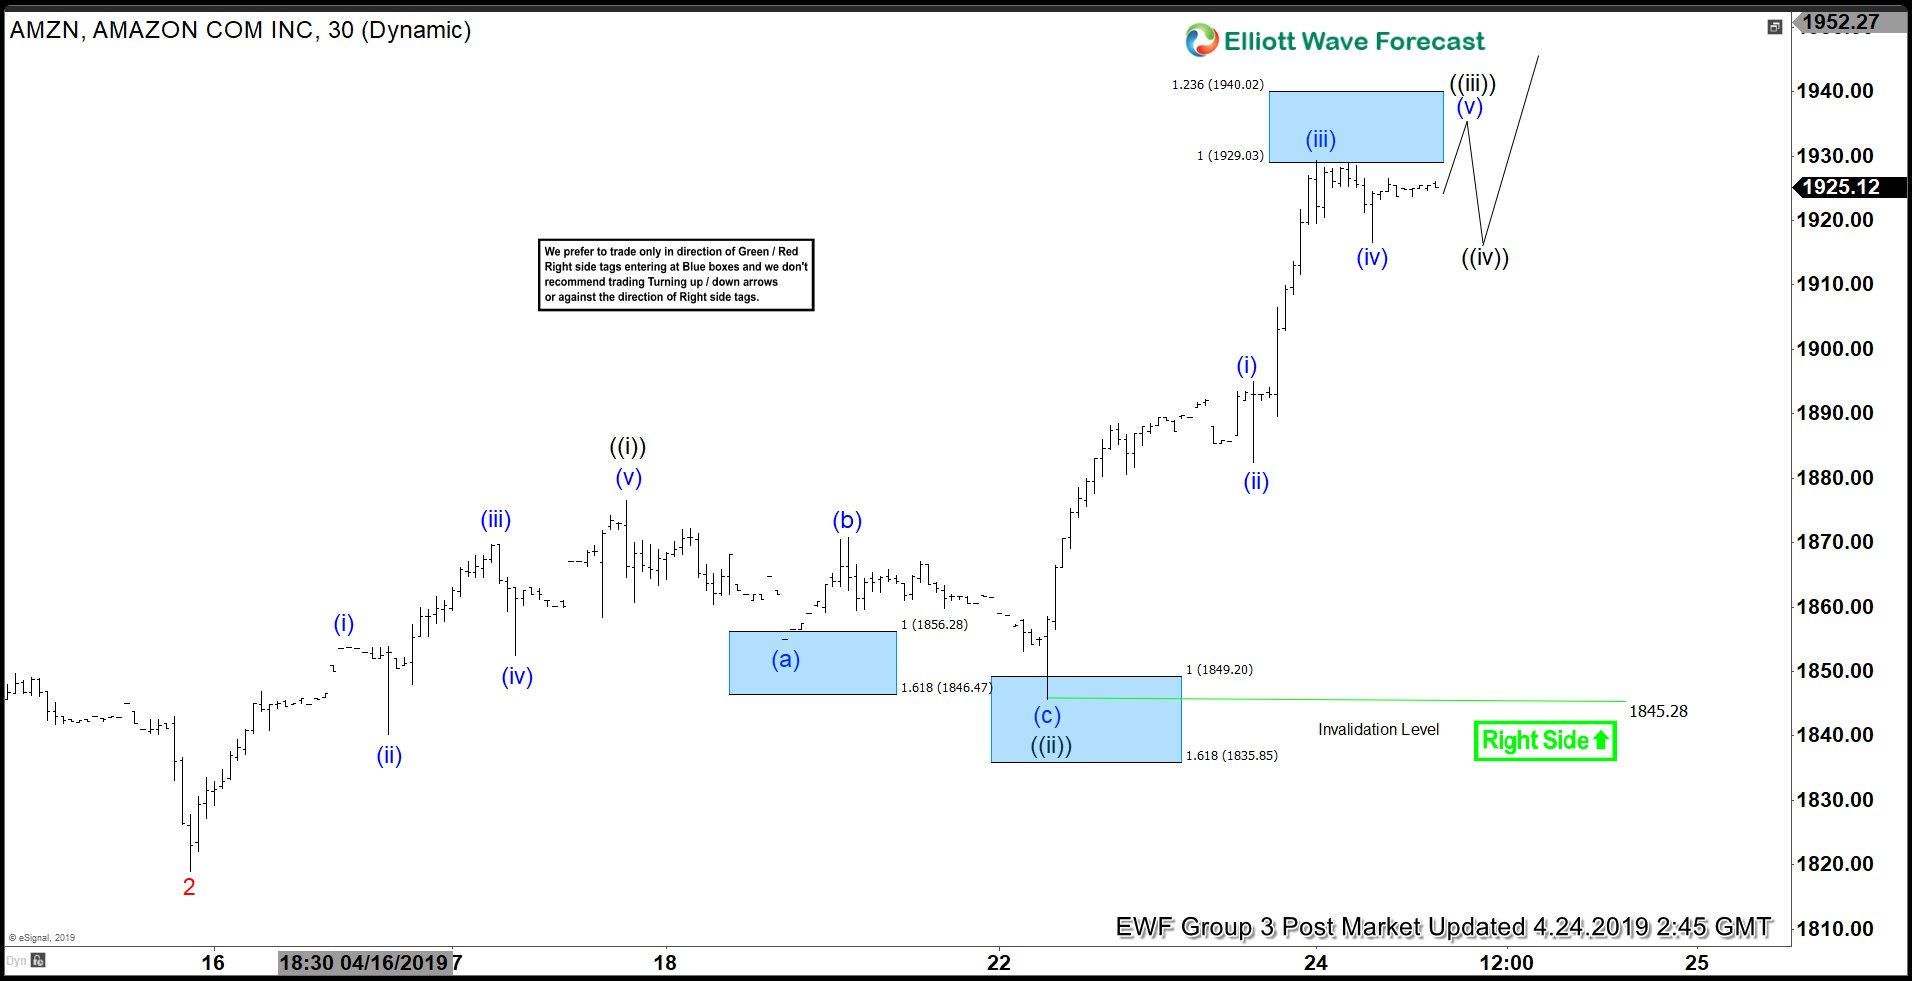 Elliott Wave View: Further Rally in Amazon (AMZN)